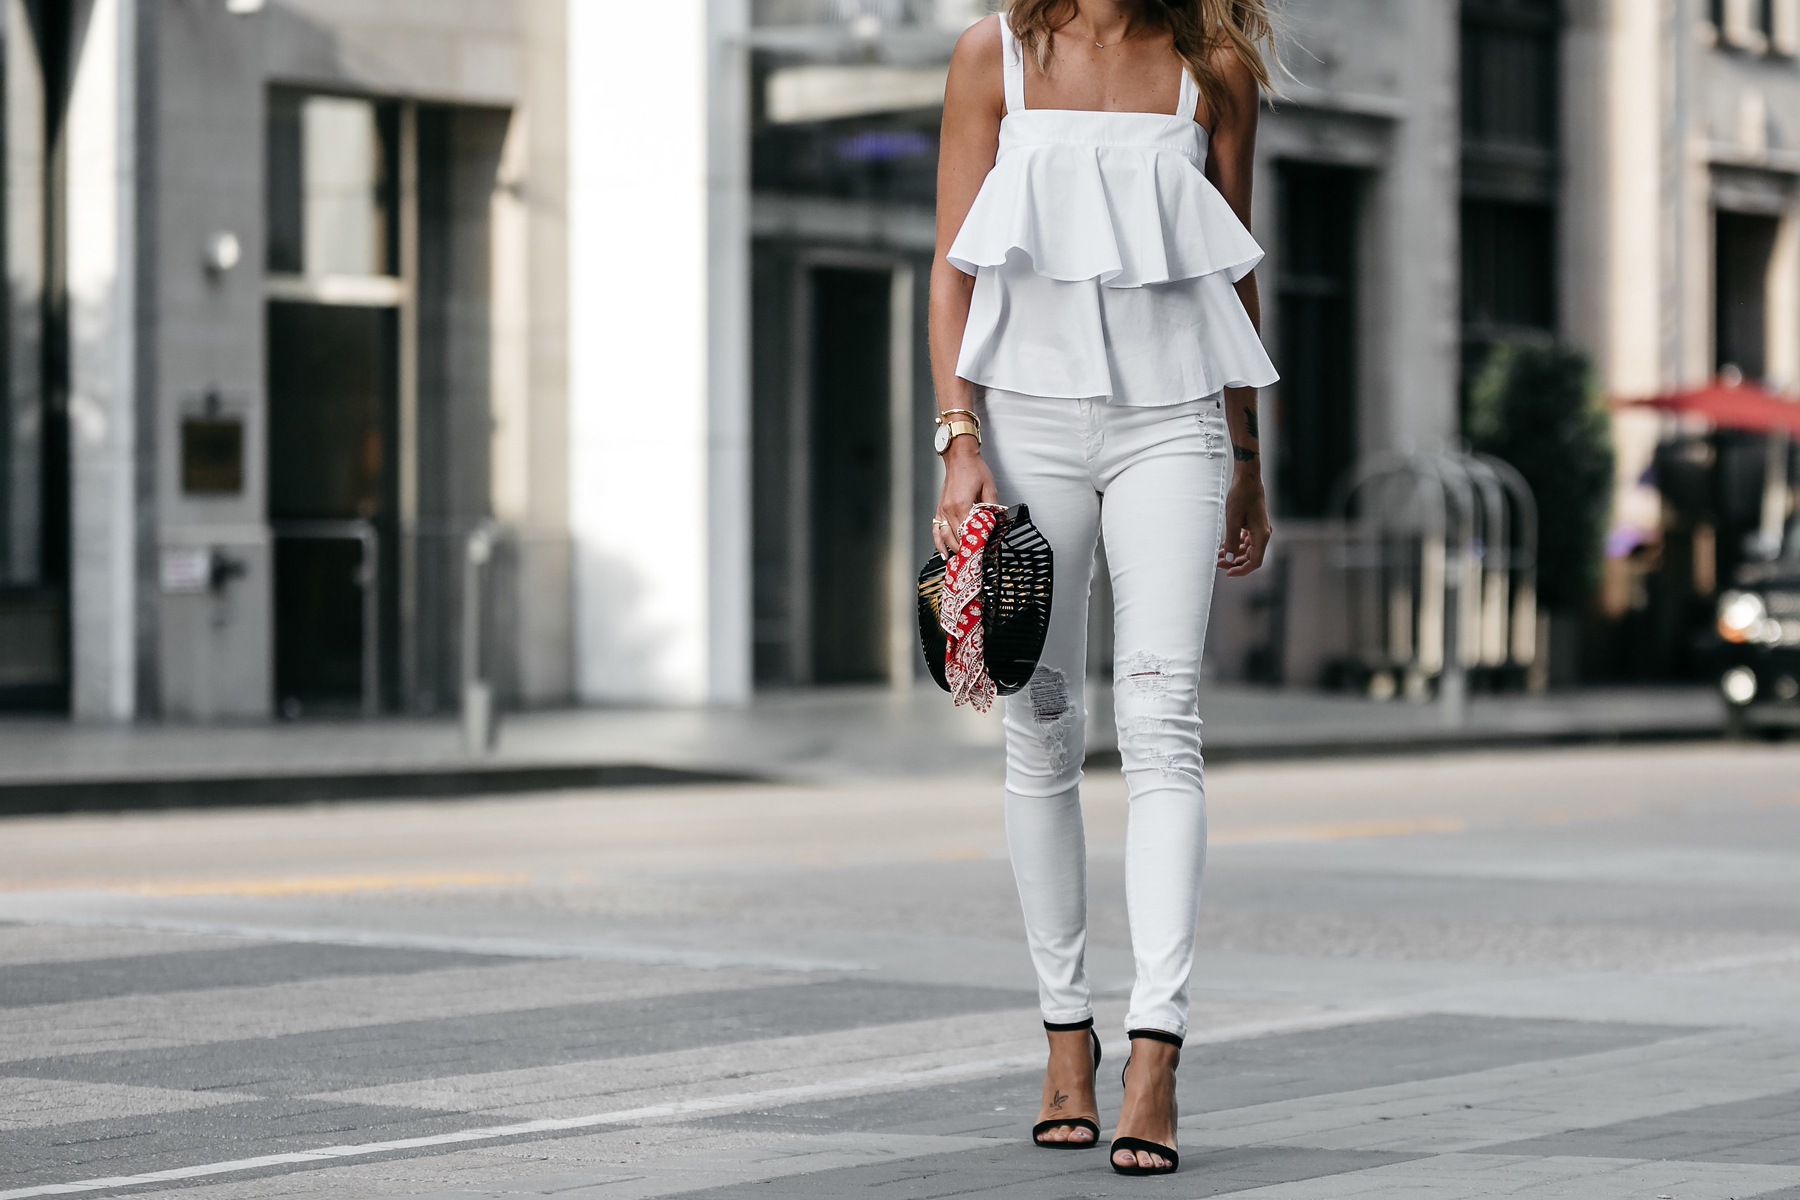 Nordstrom White Ruffle Tank White Ripped Skinny Jeans Outfit Black Ankle Strap Heeled Sandals Cult Gaia Black Acrylic Clutch Red Bandana Fashion Jackson Dallas Blogger Fashion Blogger Street Style